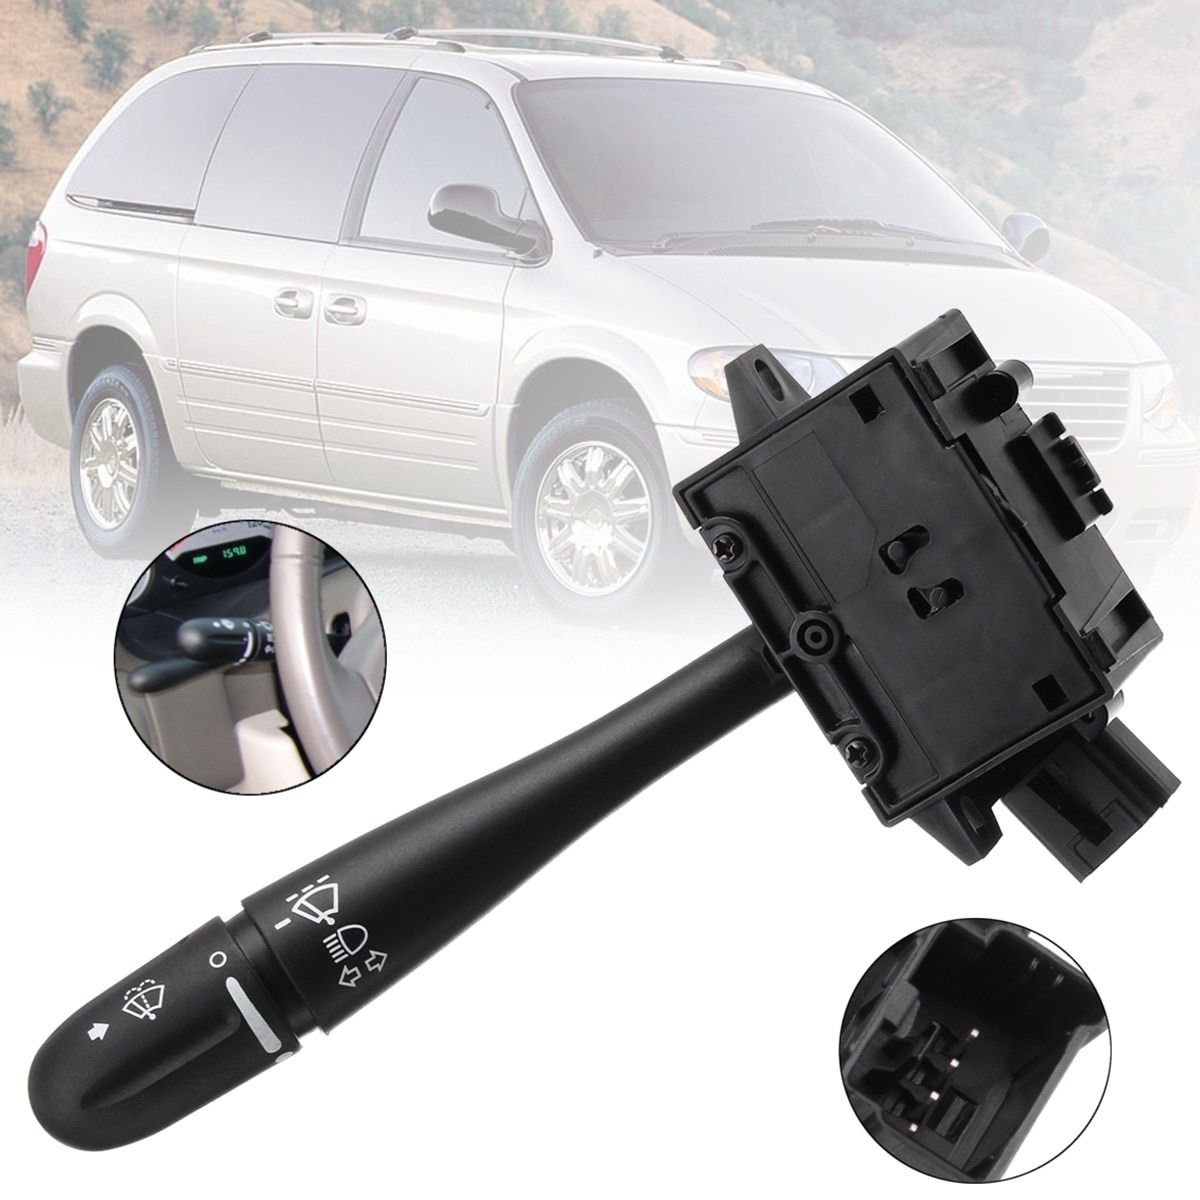 Steering Column Turn Signal Headlamp Switch Wiper Blade Unit For Dodge Grand Caravan Chrysler Voyager 2003 2004 2005 2006 2007